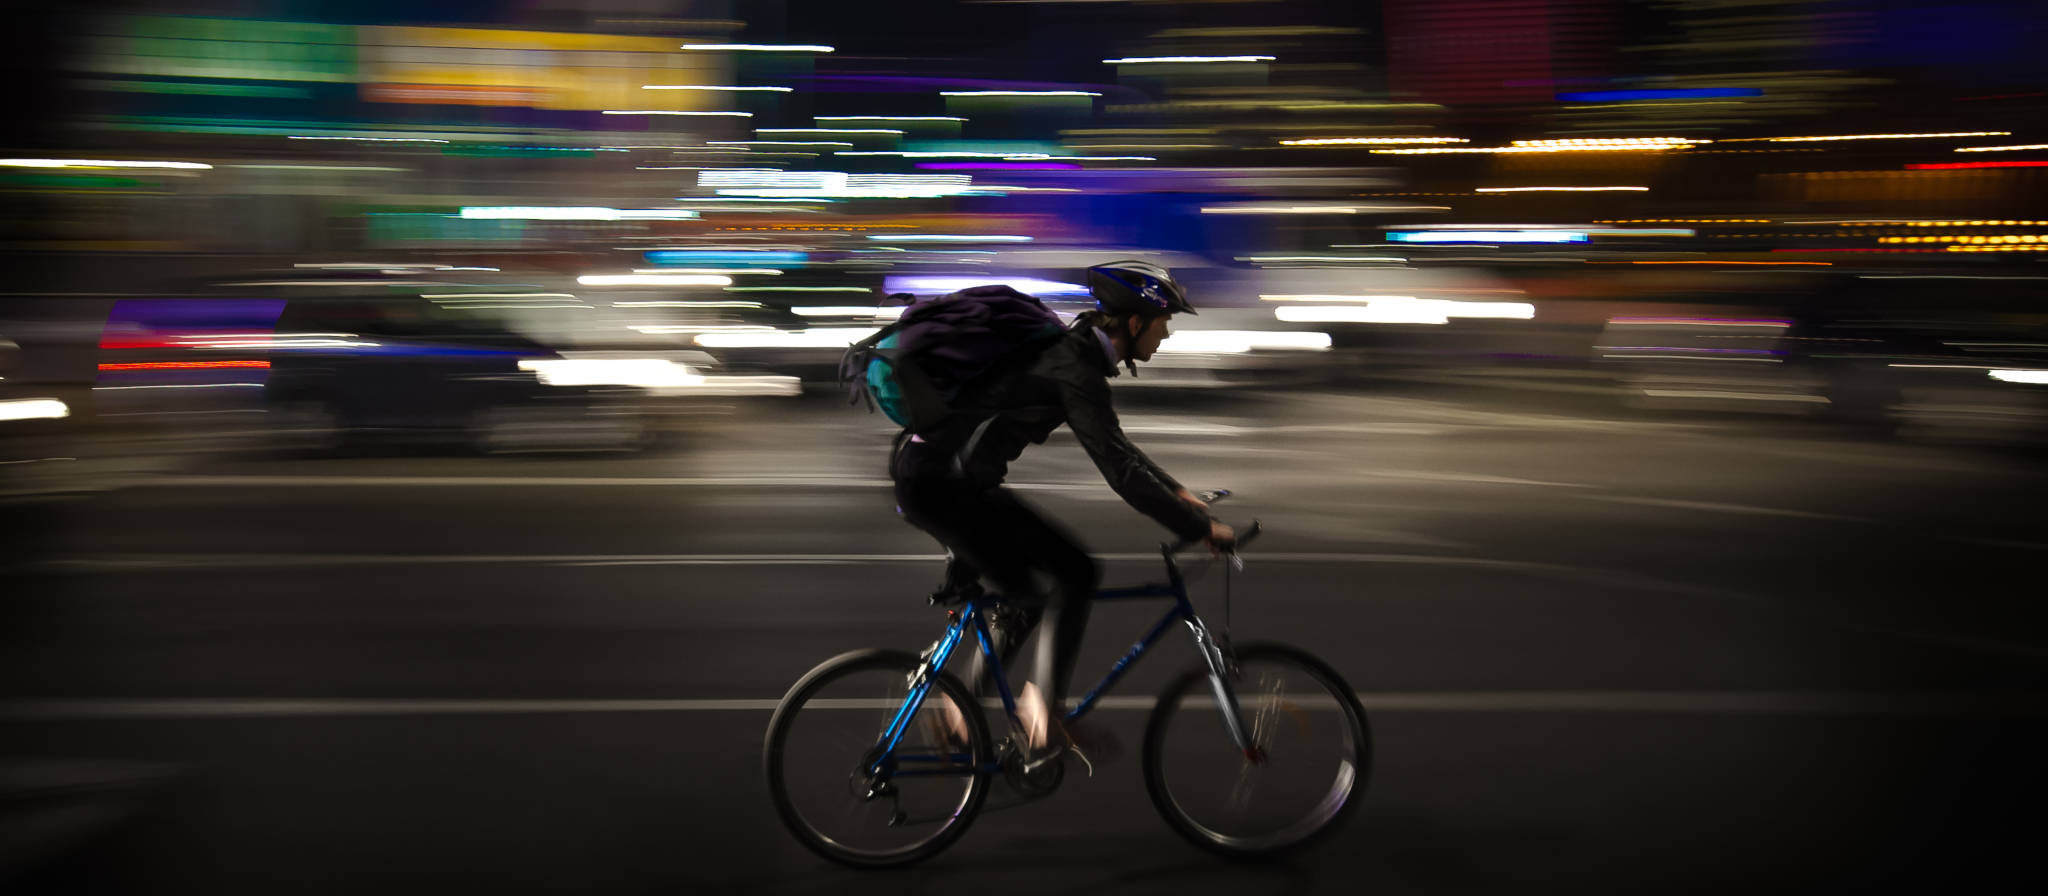 Upside Cyclestyle Last Chance Men's collection - city cyclist at night with lights